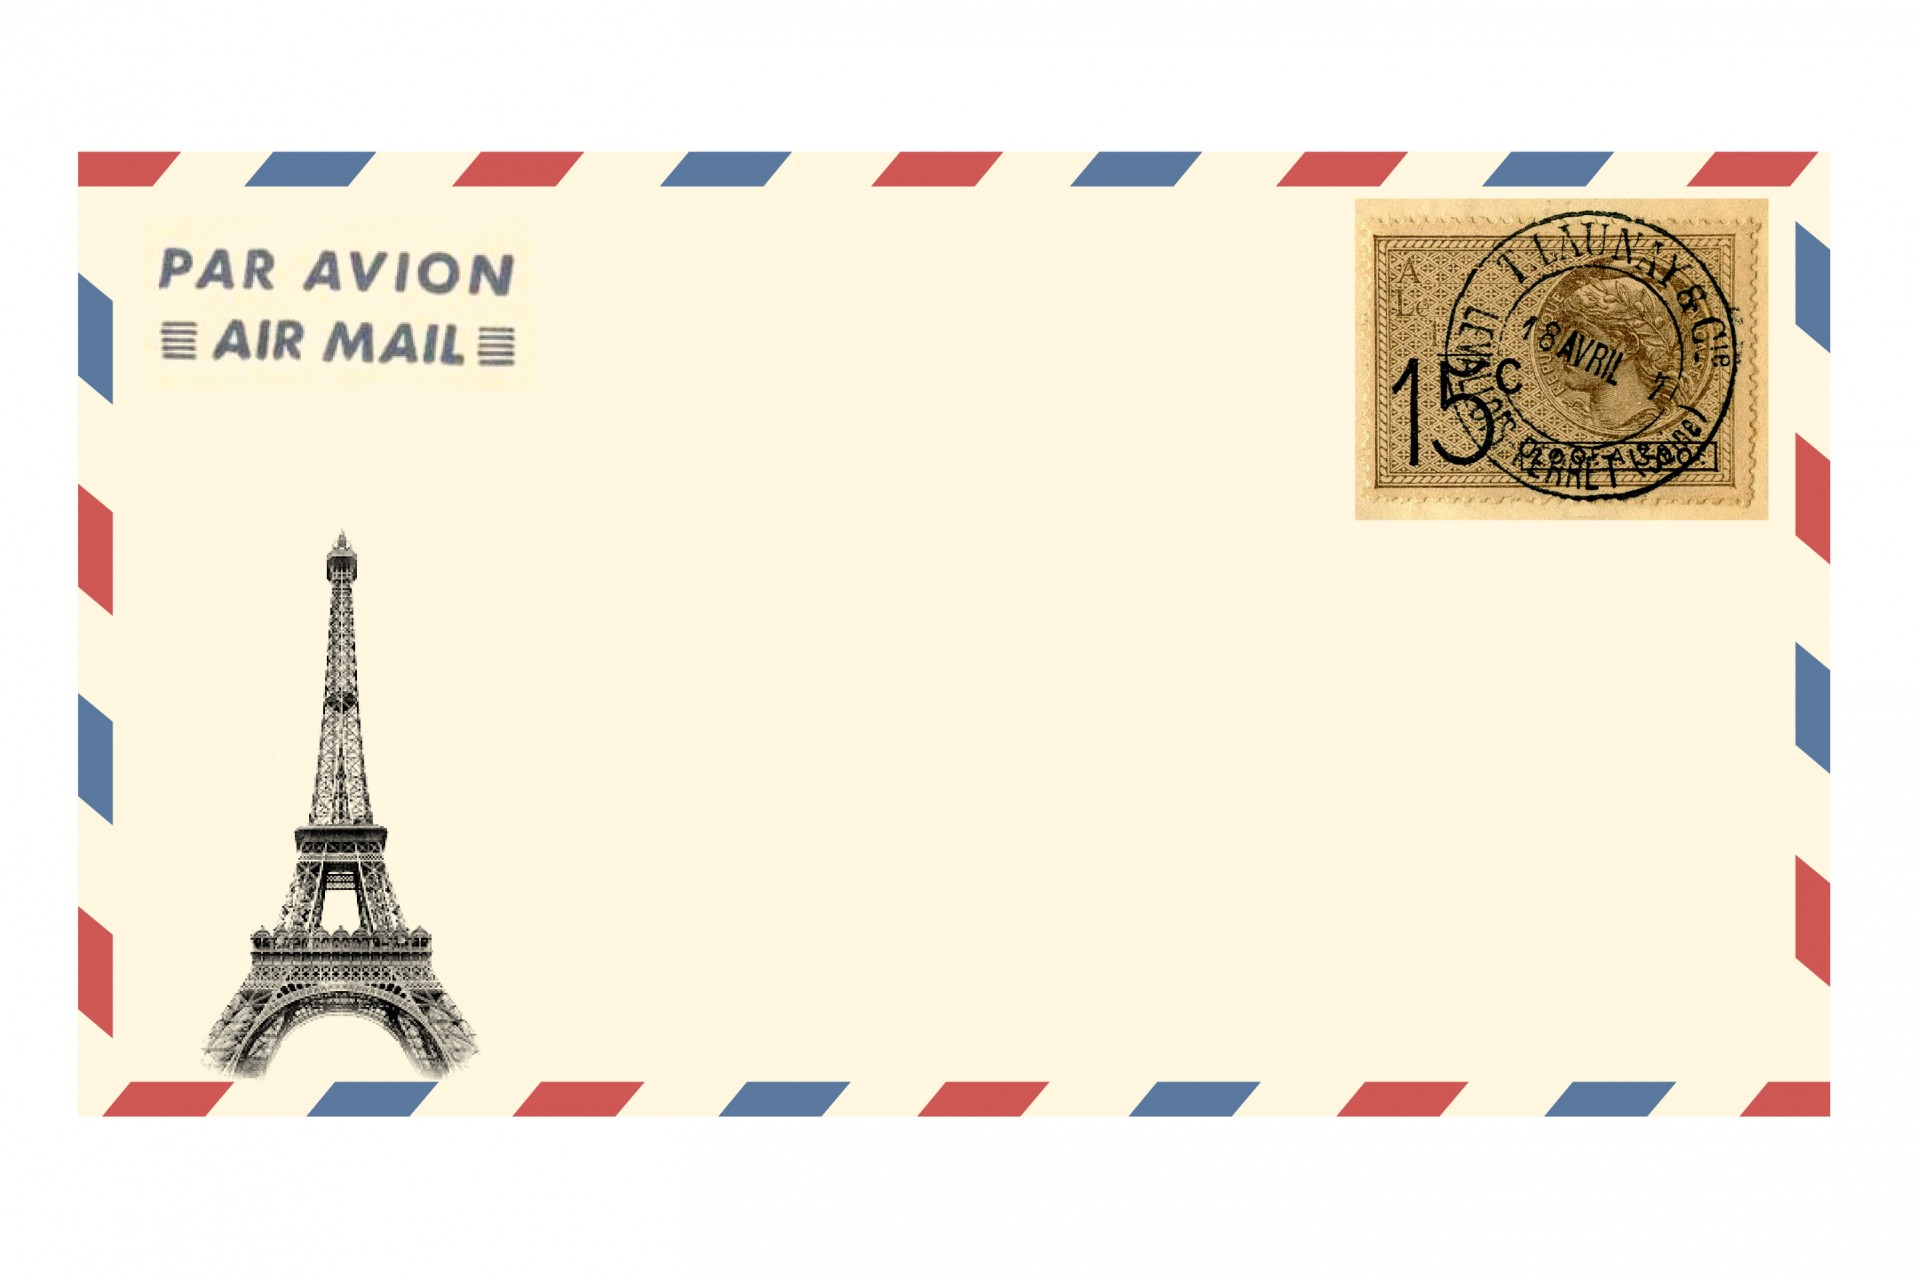 Envelope clipart par avion. Air mail eiffel tower